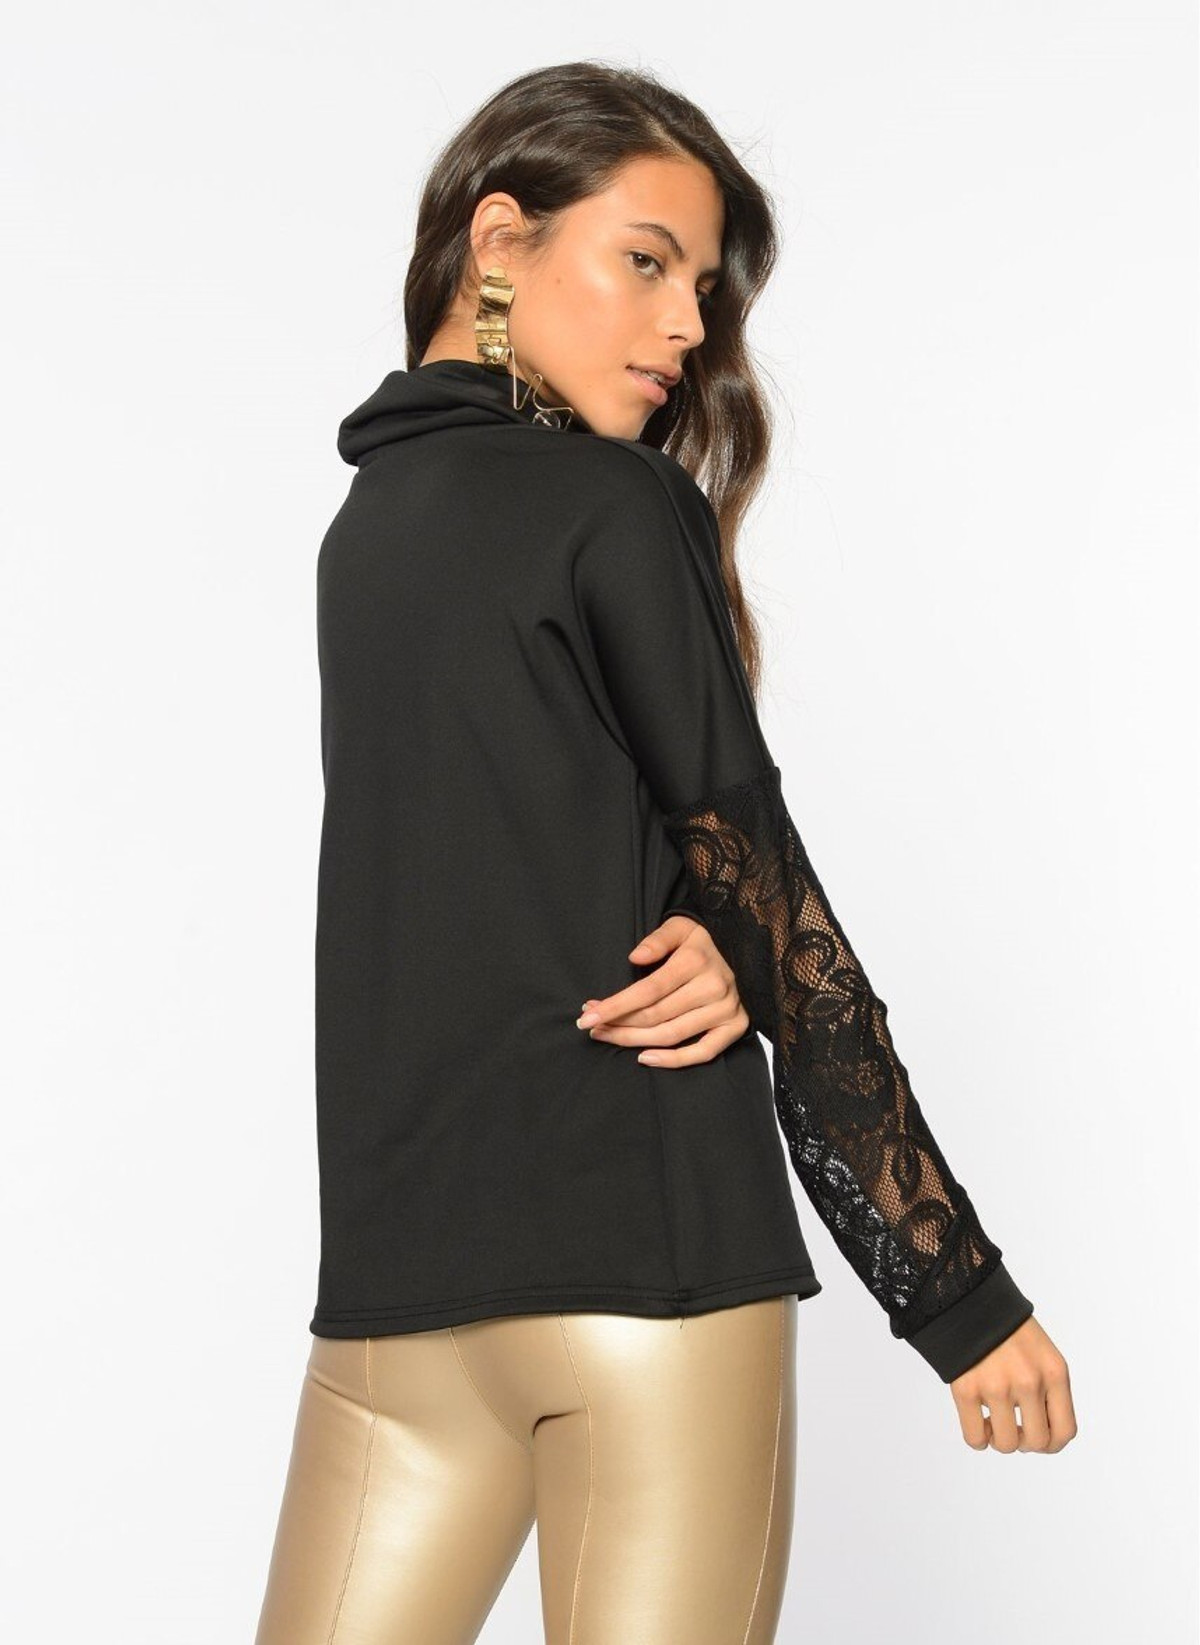 Blouse with Lace Sleeves and Low Collar in Black